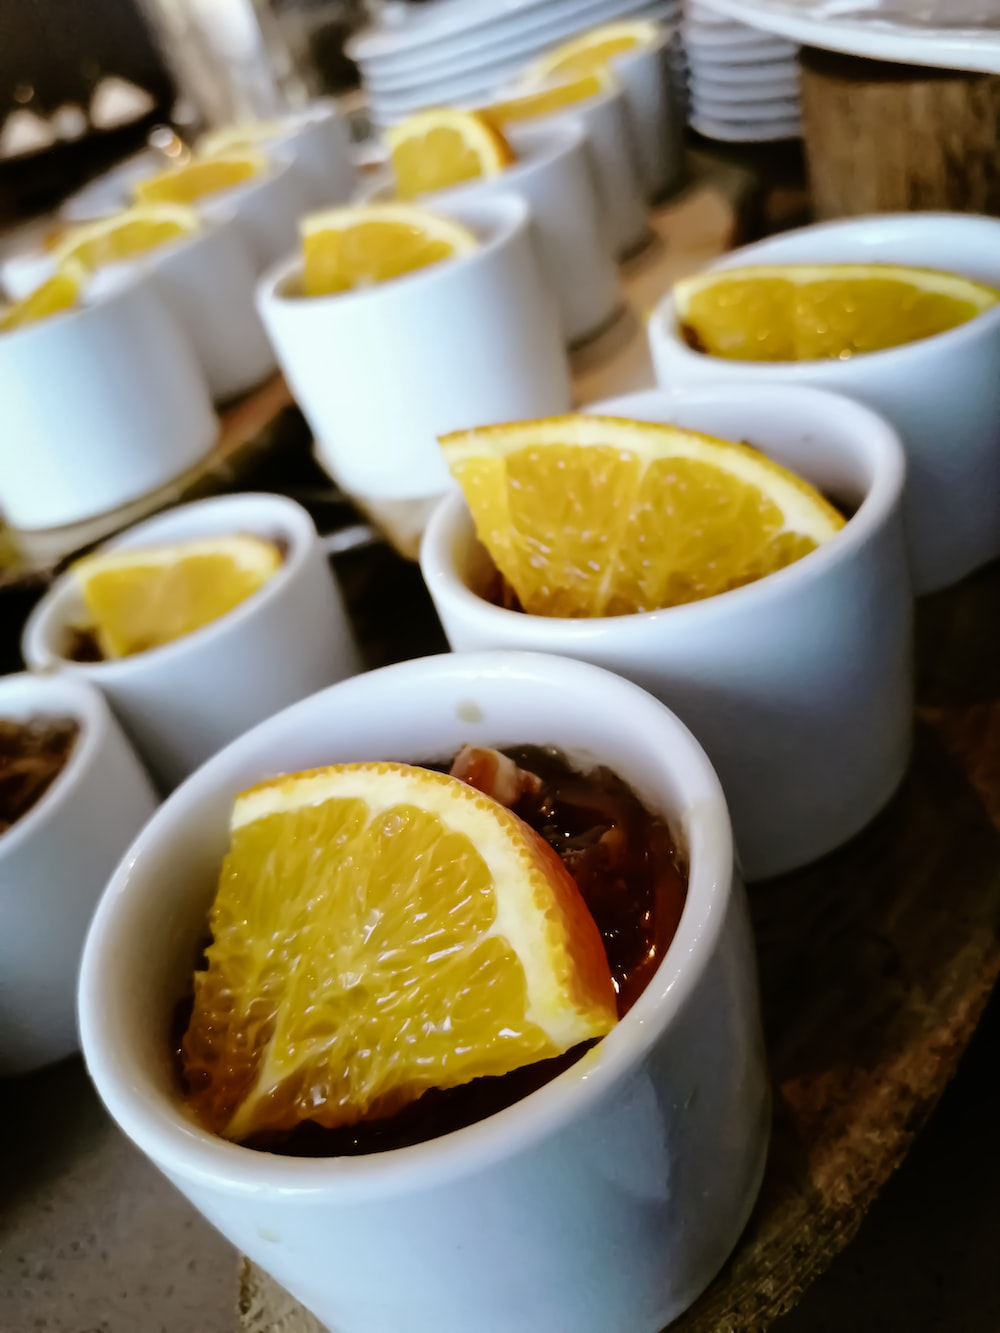 round white cup with food and lemon